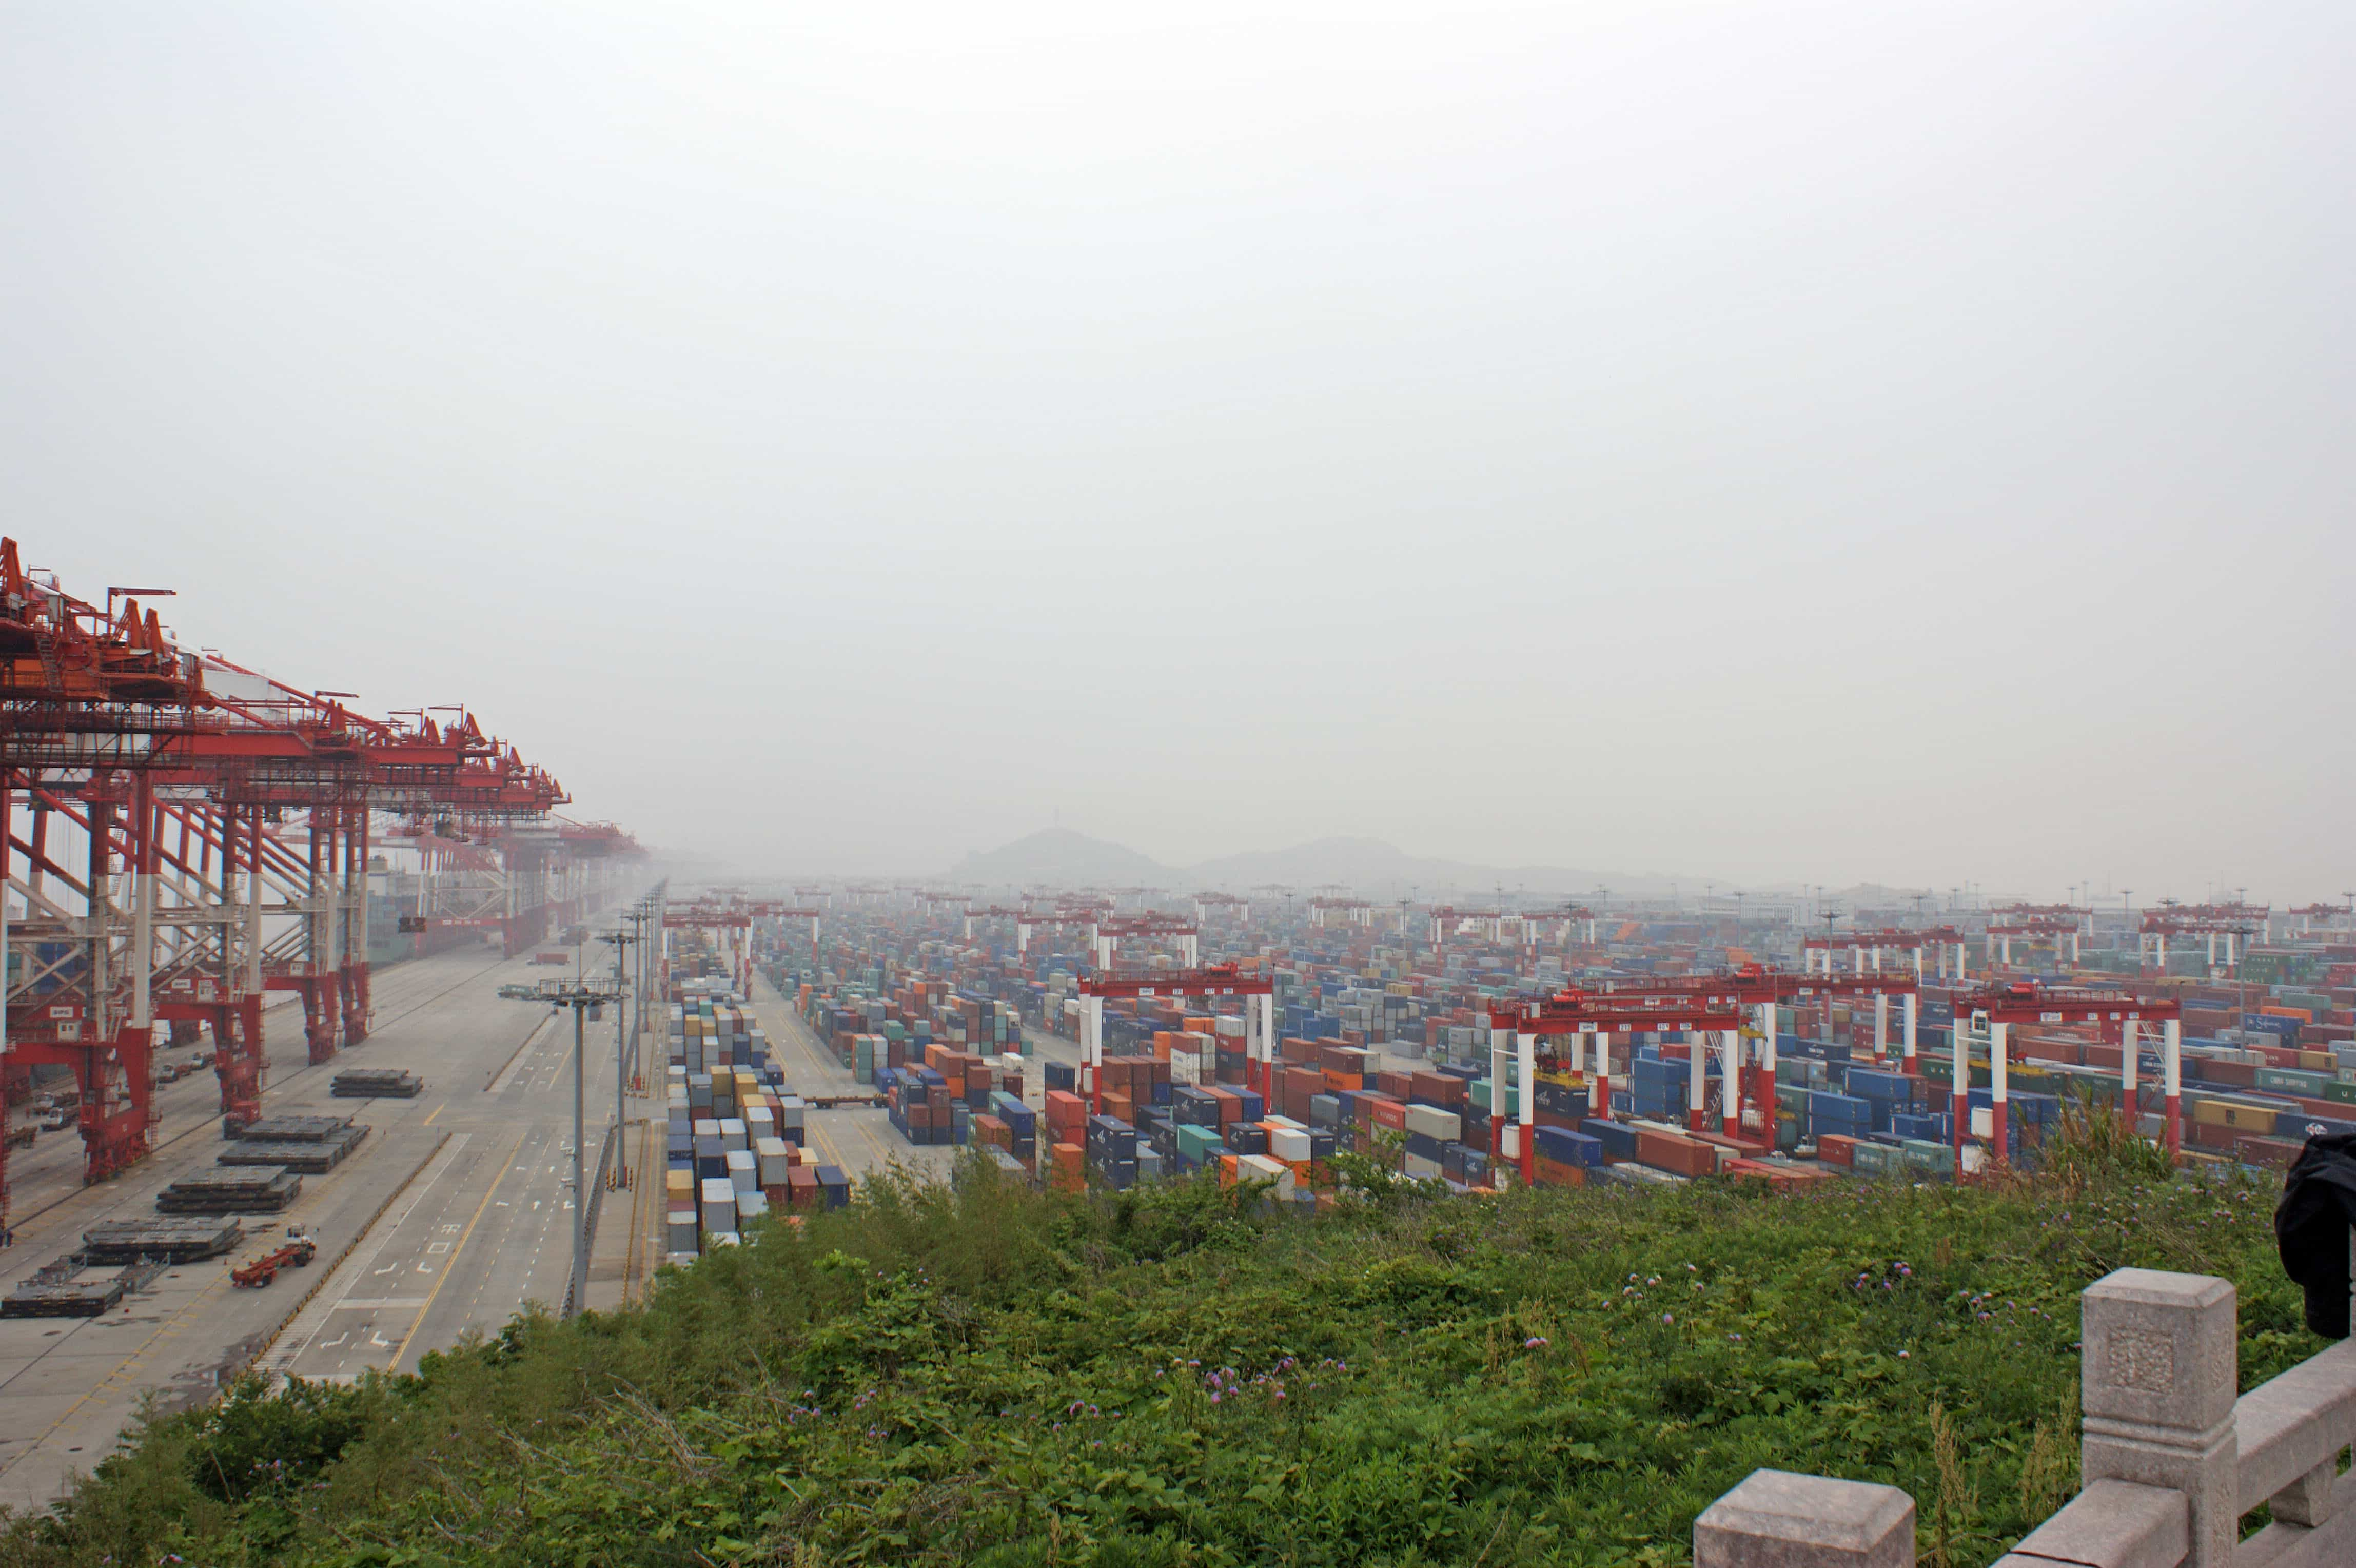 Port of Shanghai